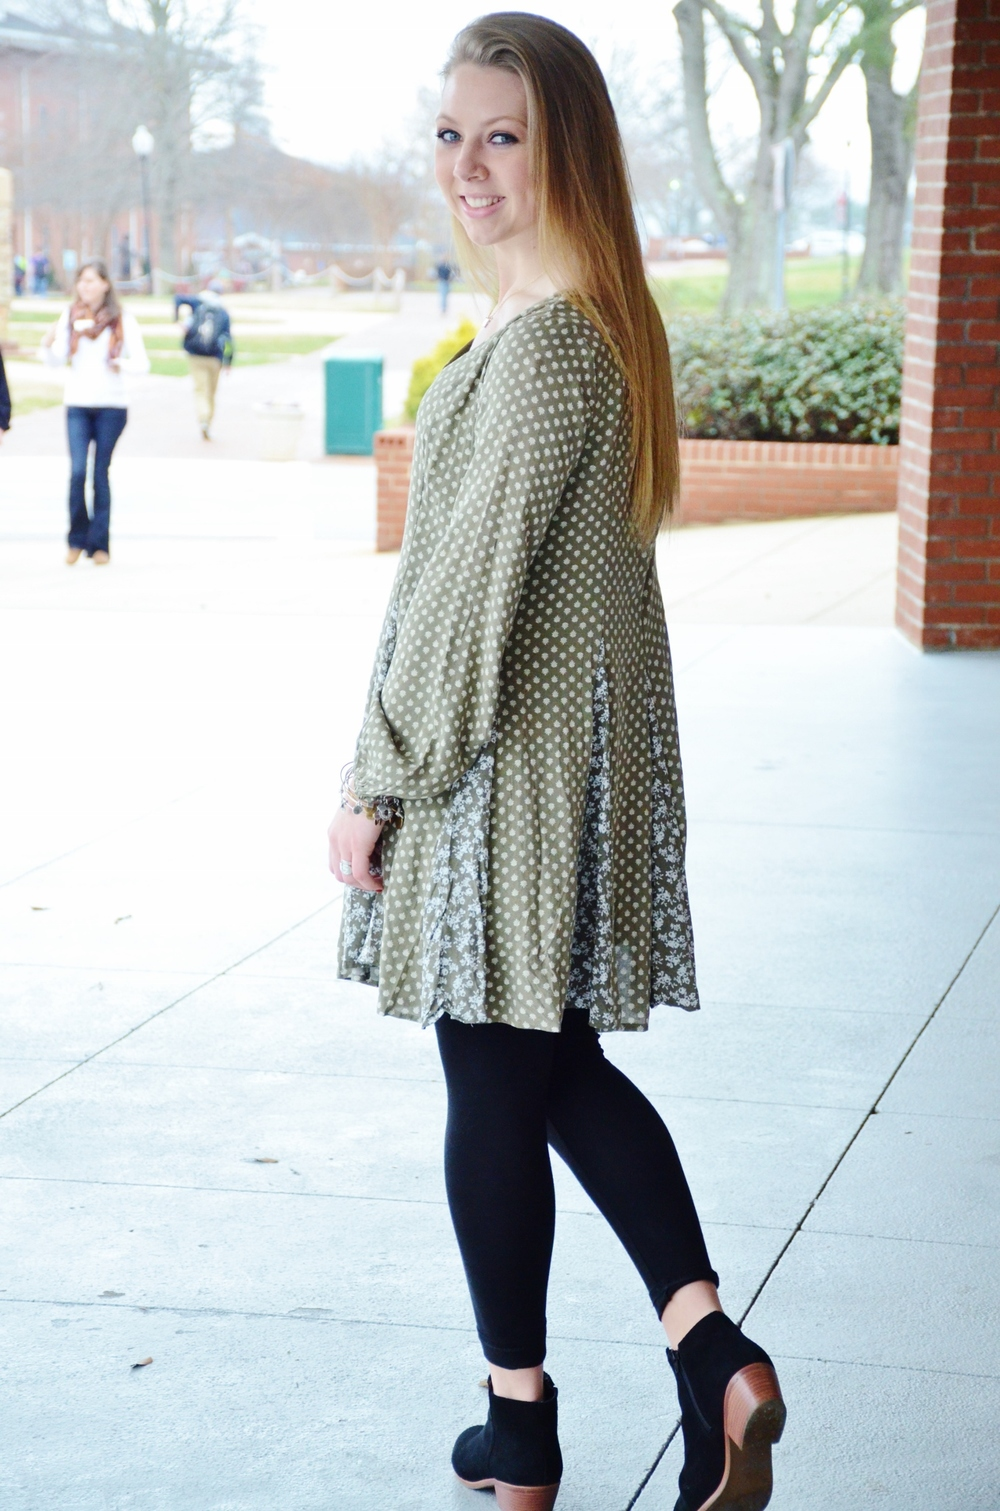 Jessi Varner knows how to stay fashionable in the winter with her long sleeved casual dress from Southern Charm along with the ankle high Jack Roger booties.